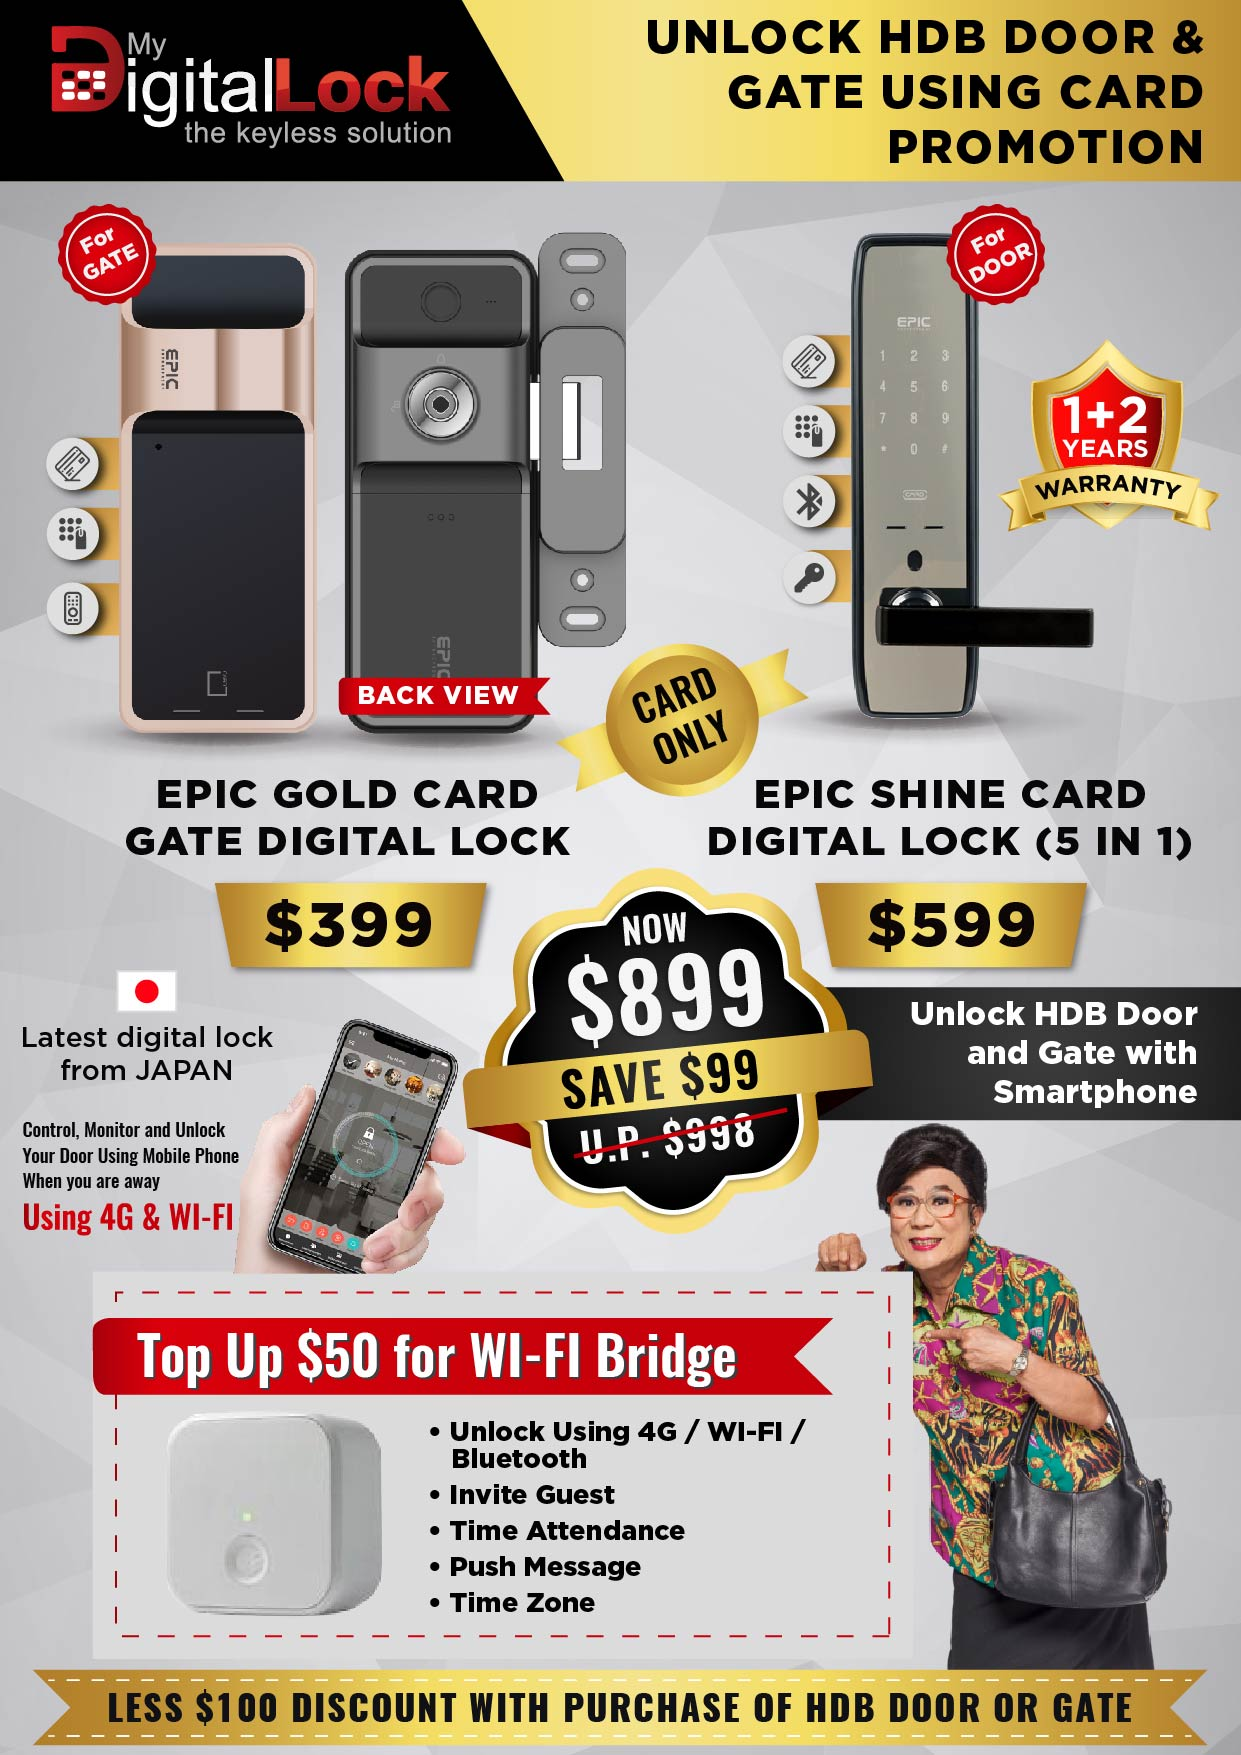 EPIC-Gold-Card-Gate-and-Shine-Card-Door-Digital-Lock